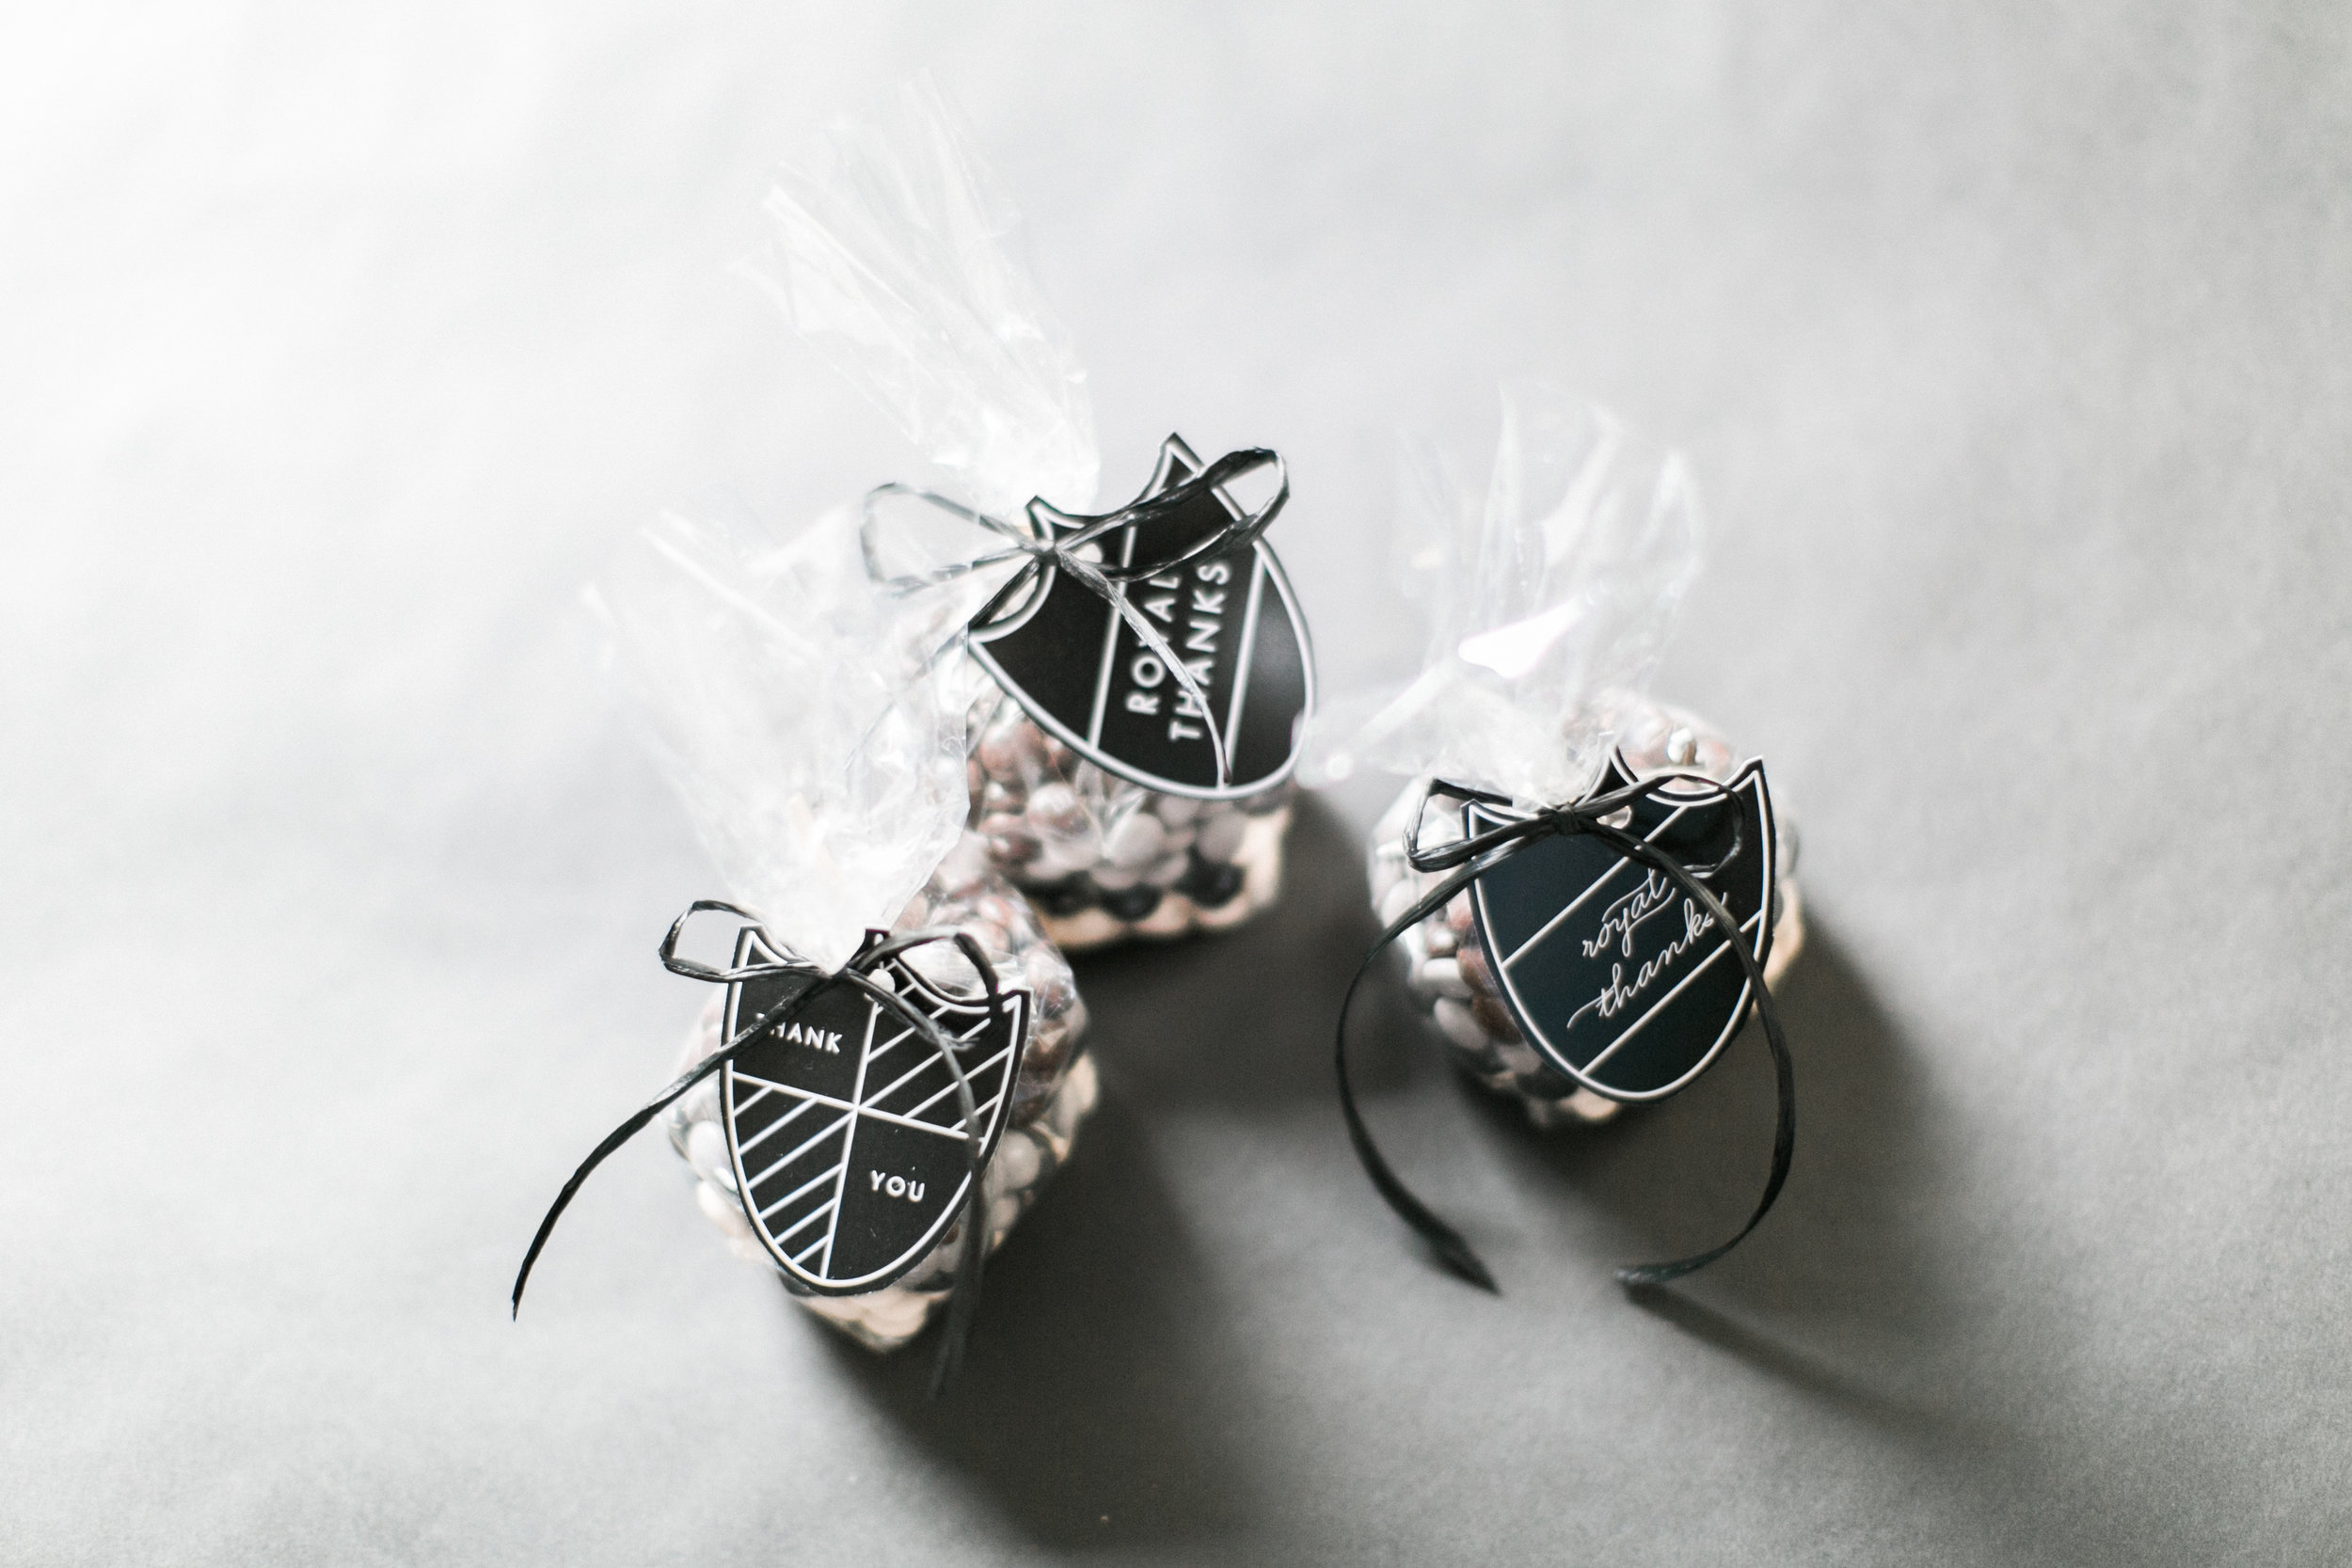 WE DESIGNED THESE FAVOR TAGS TO THANK GUEST FOR ATTENDING THE ROYAL AFFAIR. IT'S ALL IN THE DETAILS!  THEY SAY, ONE IS THE LONELIEST NUMBER THAT YOU'LL EVER DO...